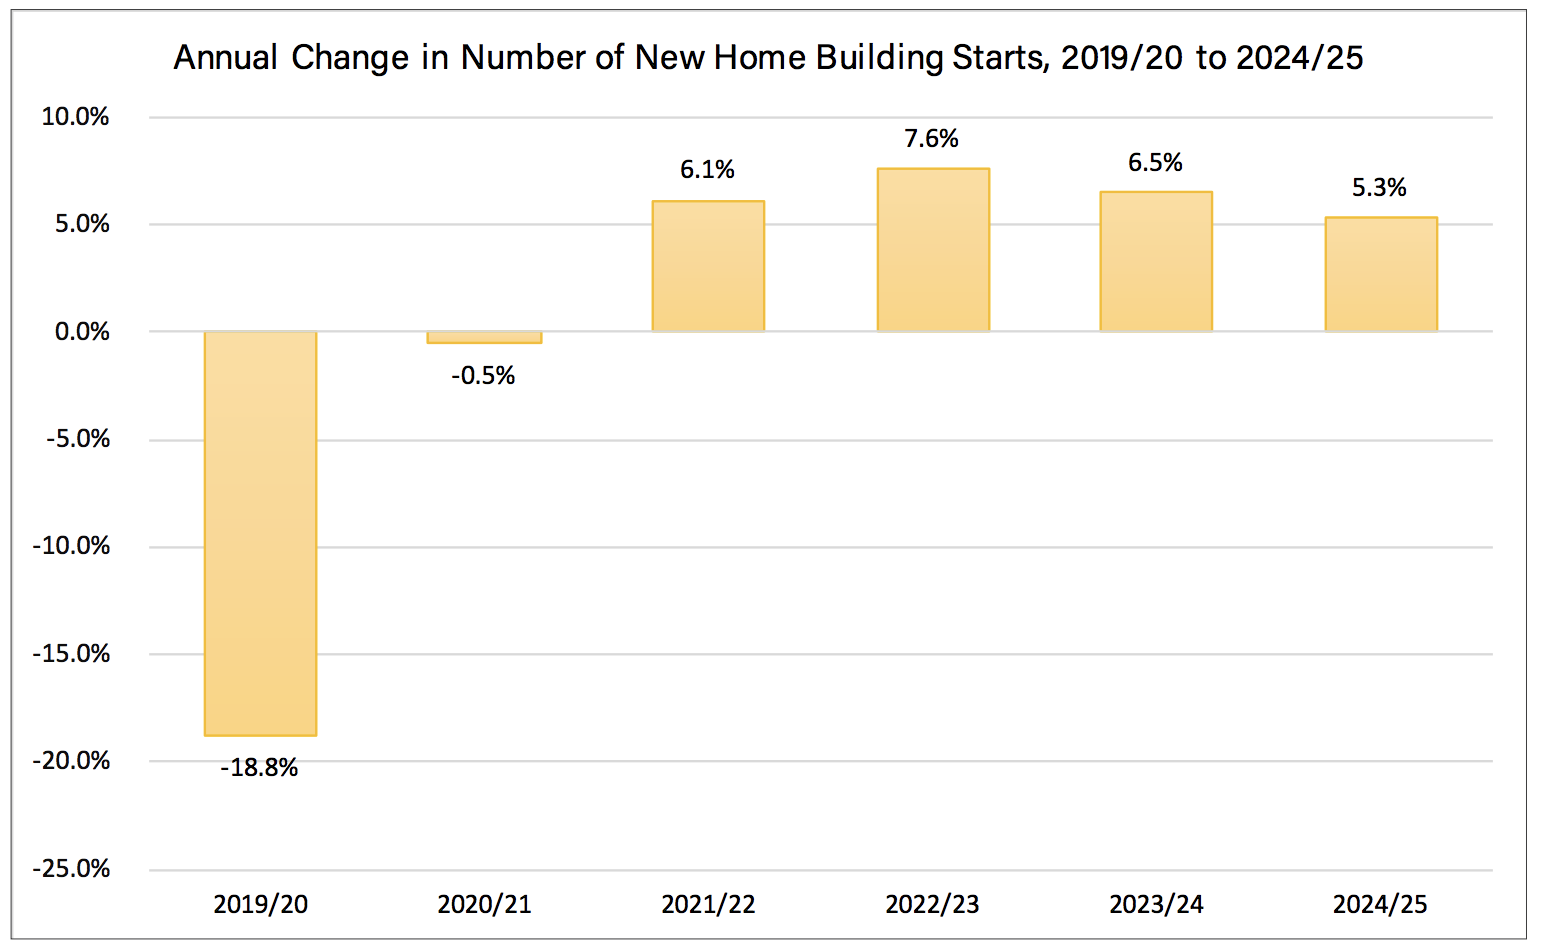 ▲ The latest ABS data shows that just over 181,000 new dwellings were started over the year to September 2019, a 20 per cent drop since the peak of the market.